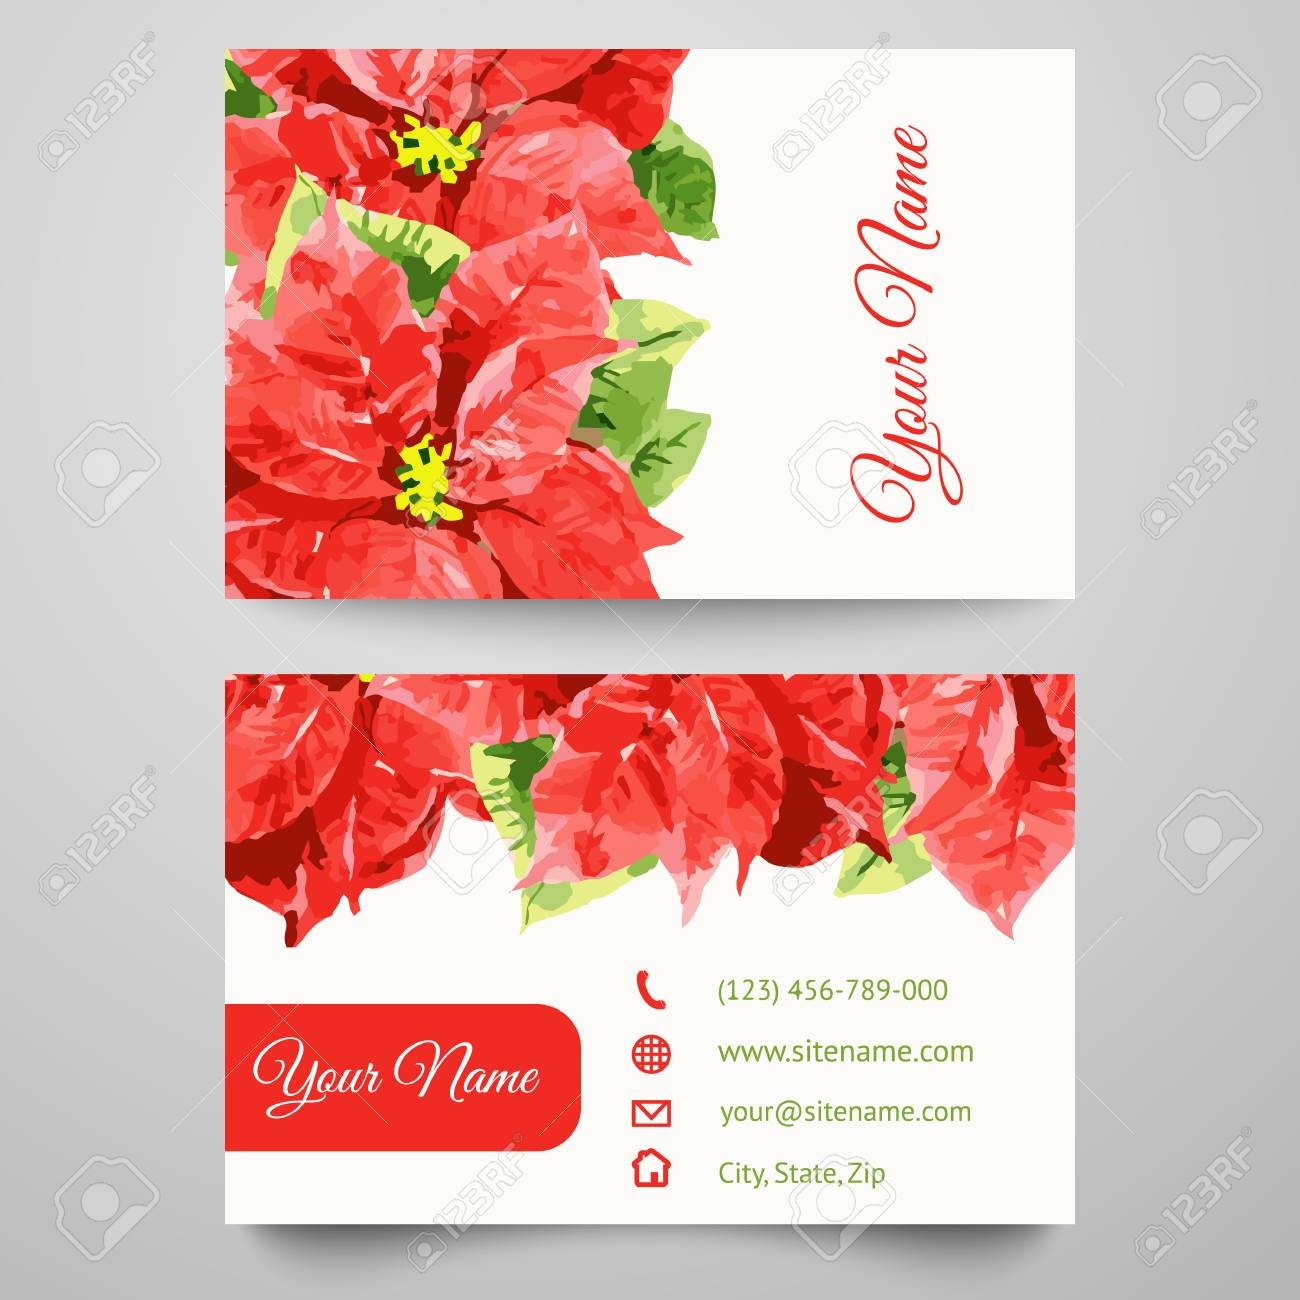 Set Of Business Card Templates With Beauty Red And Pink Flowers ...